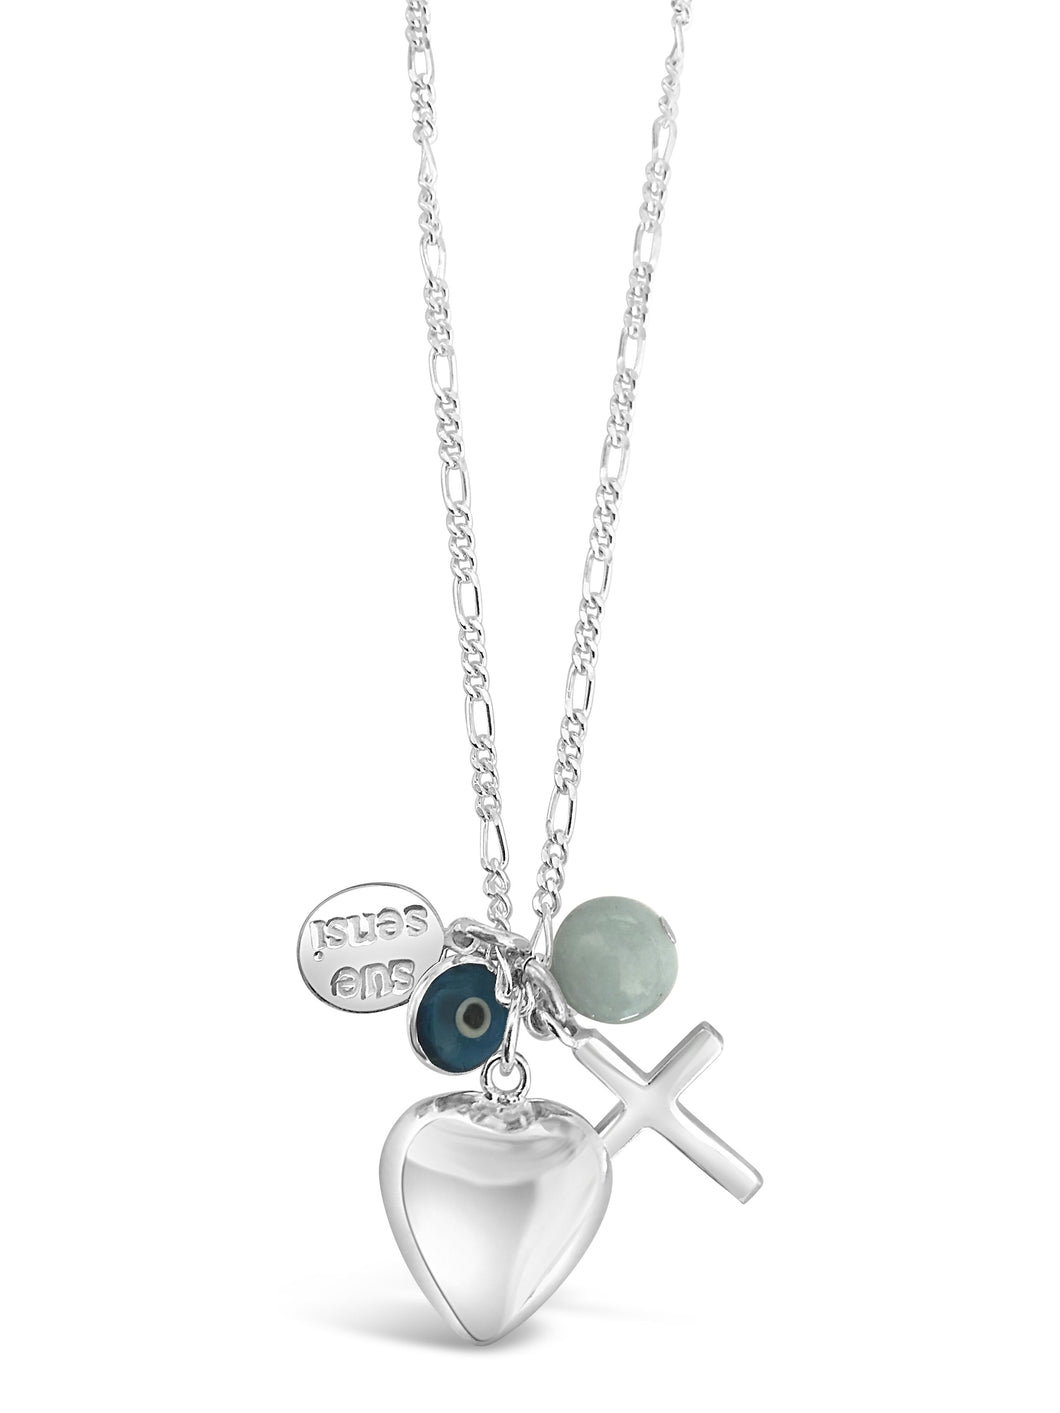 Love faith protection necklace